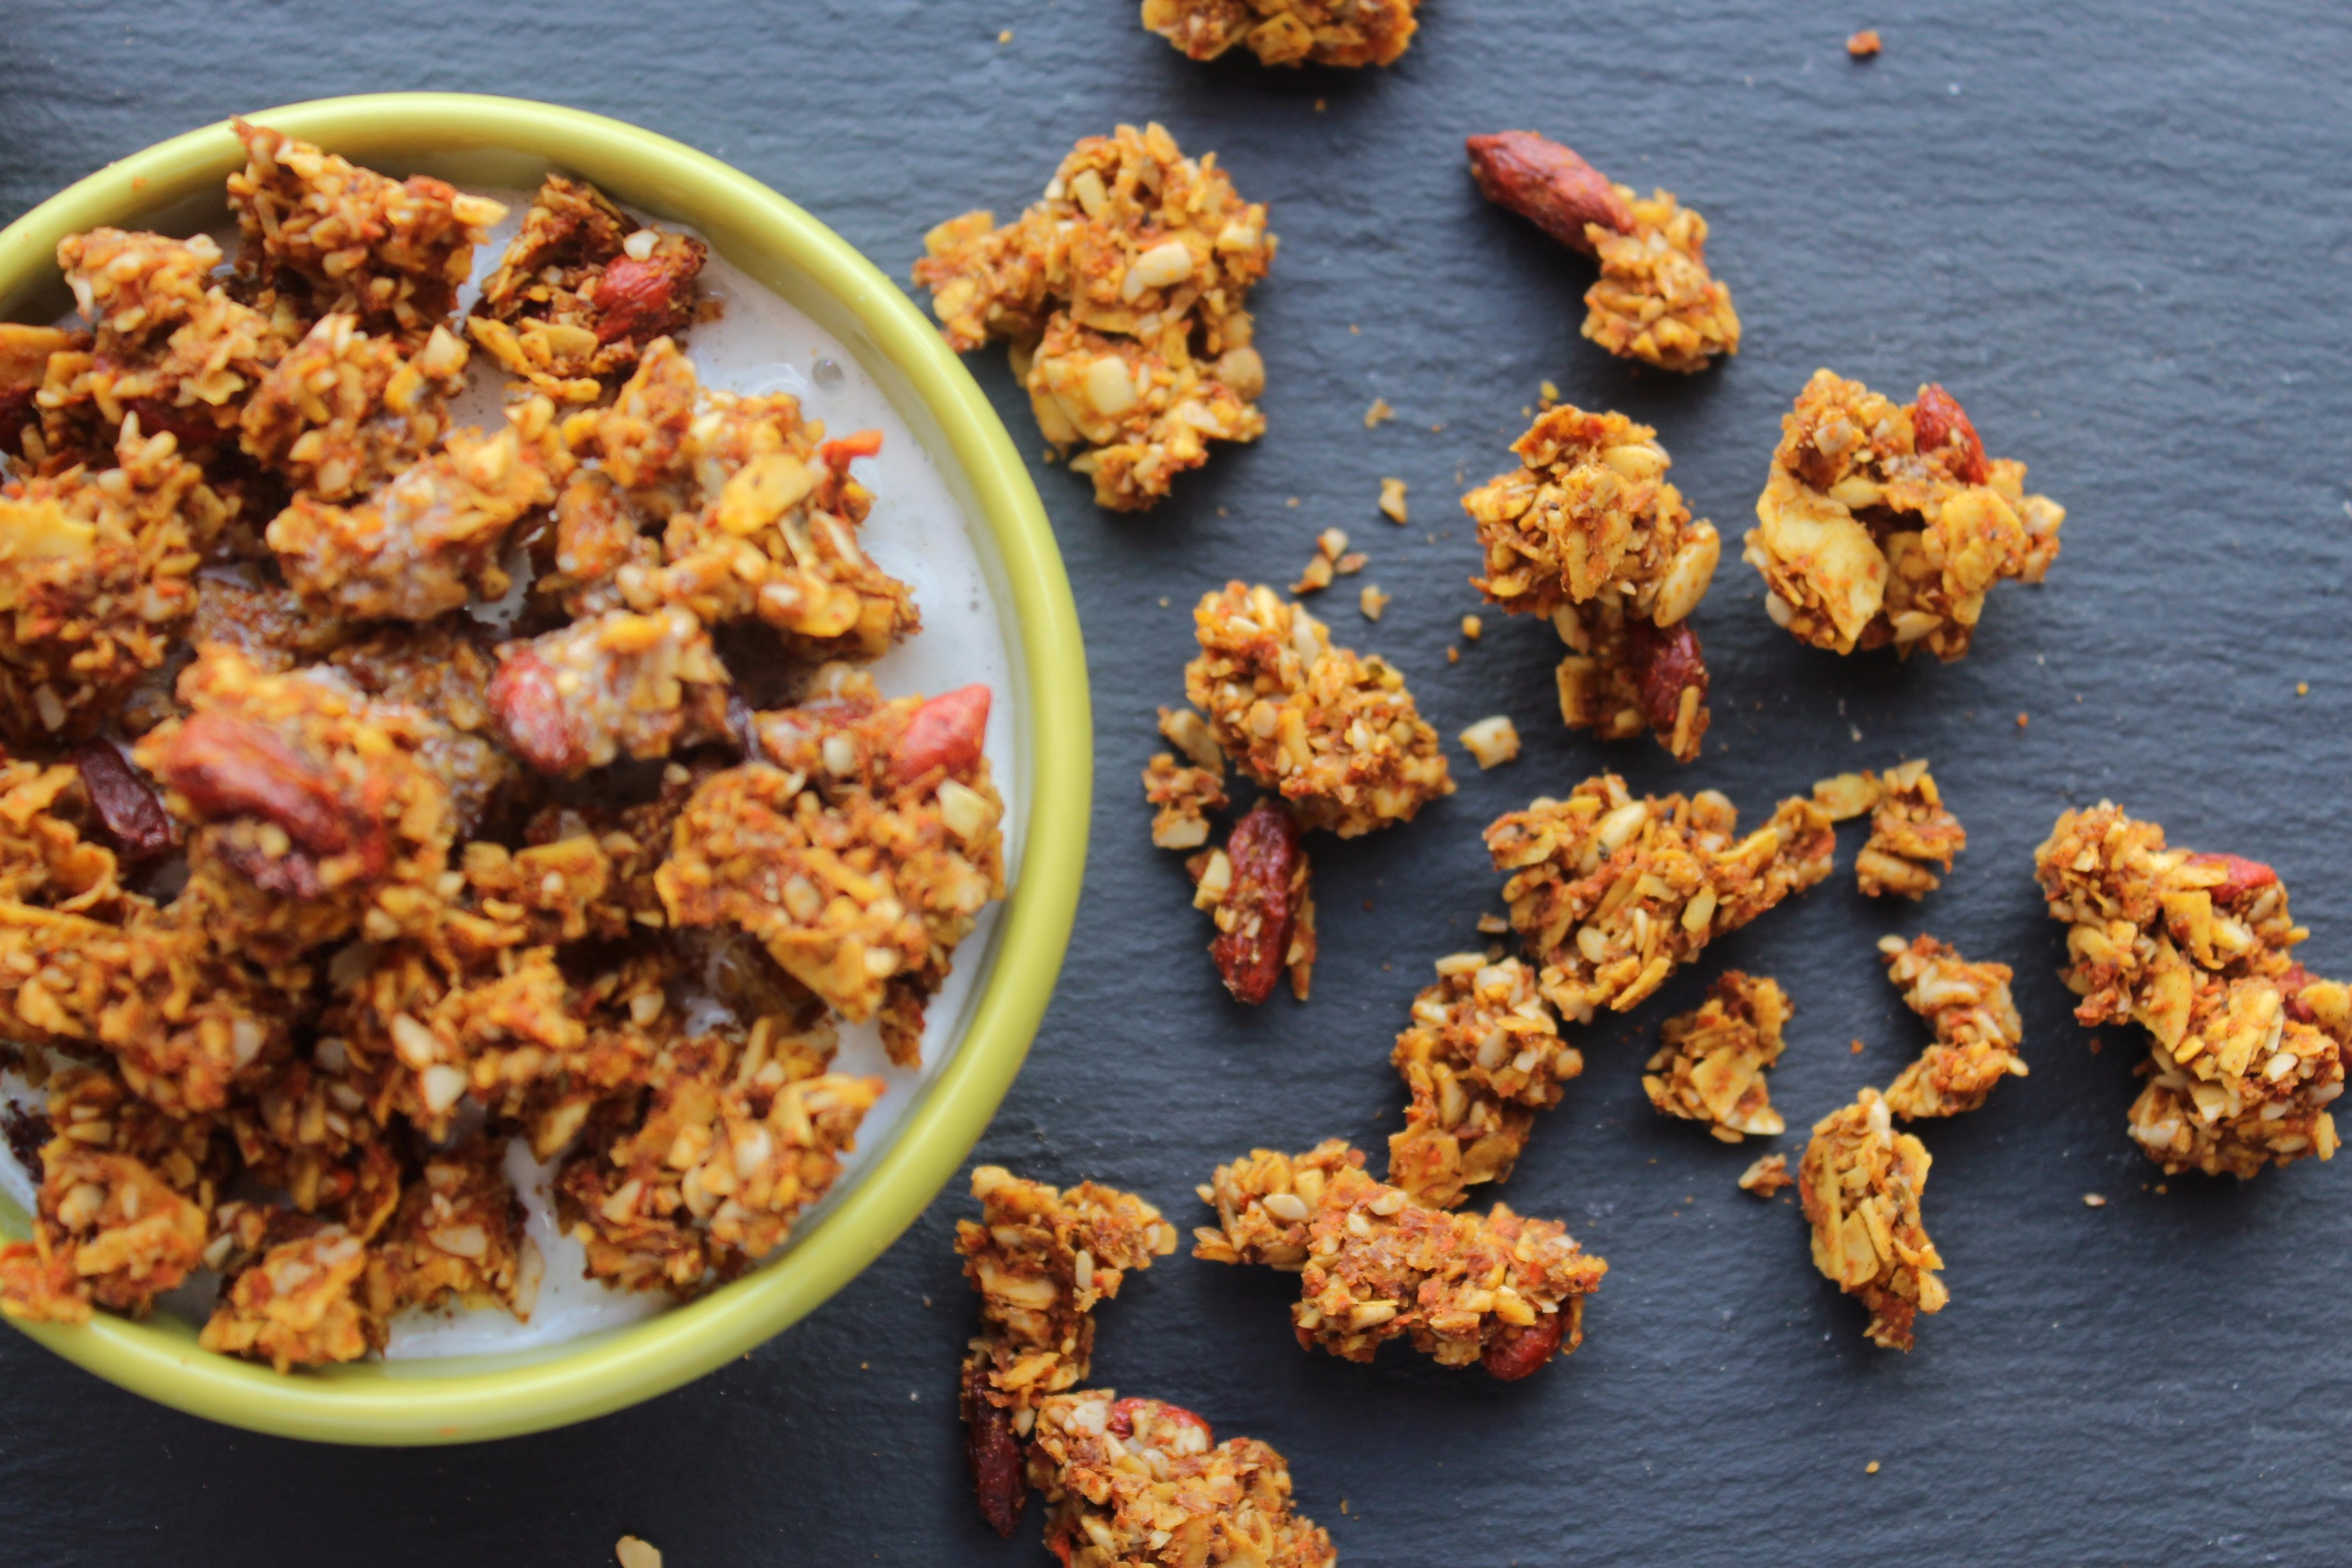 learn to make plant-based granola